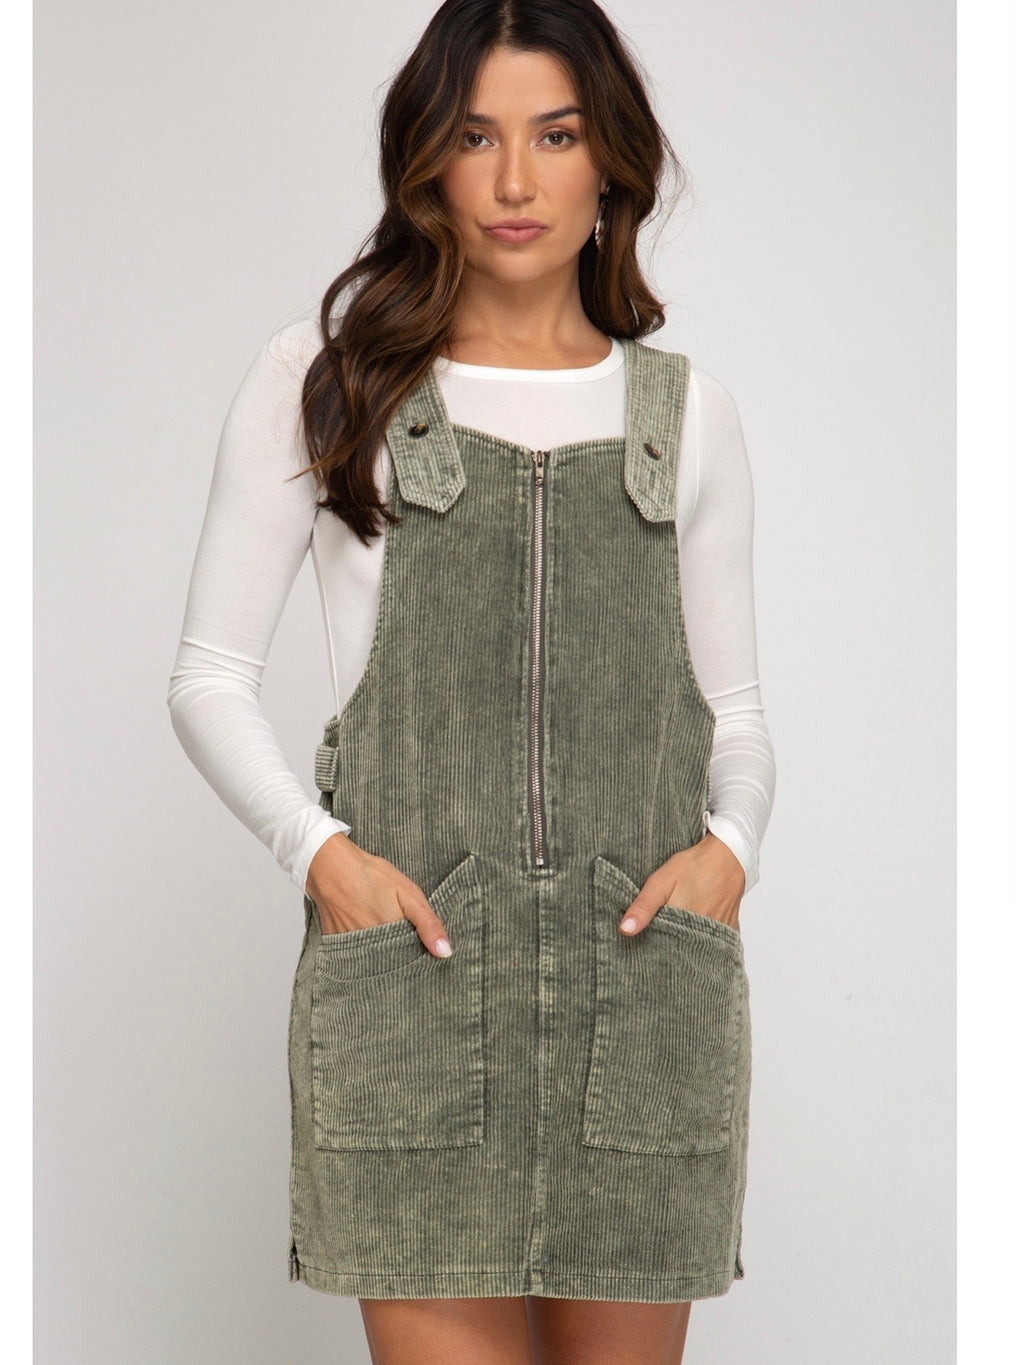 FALLing In Love Corduroy Overall Mini Dress